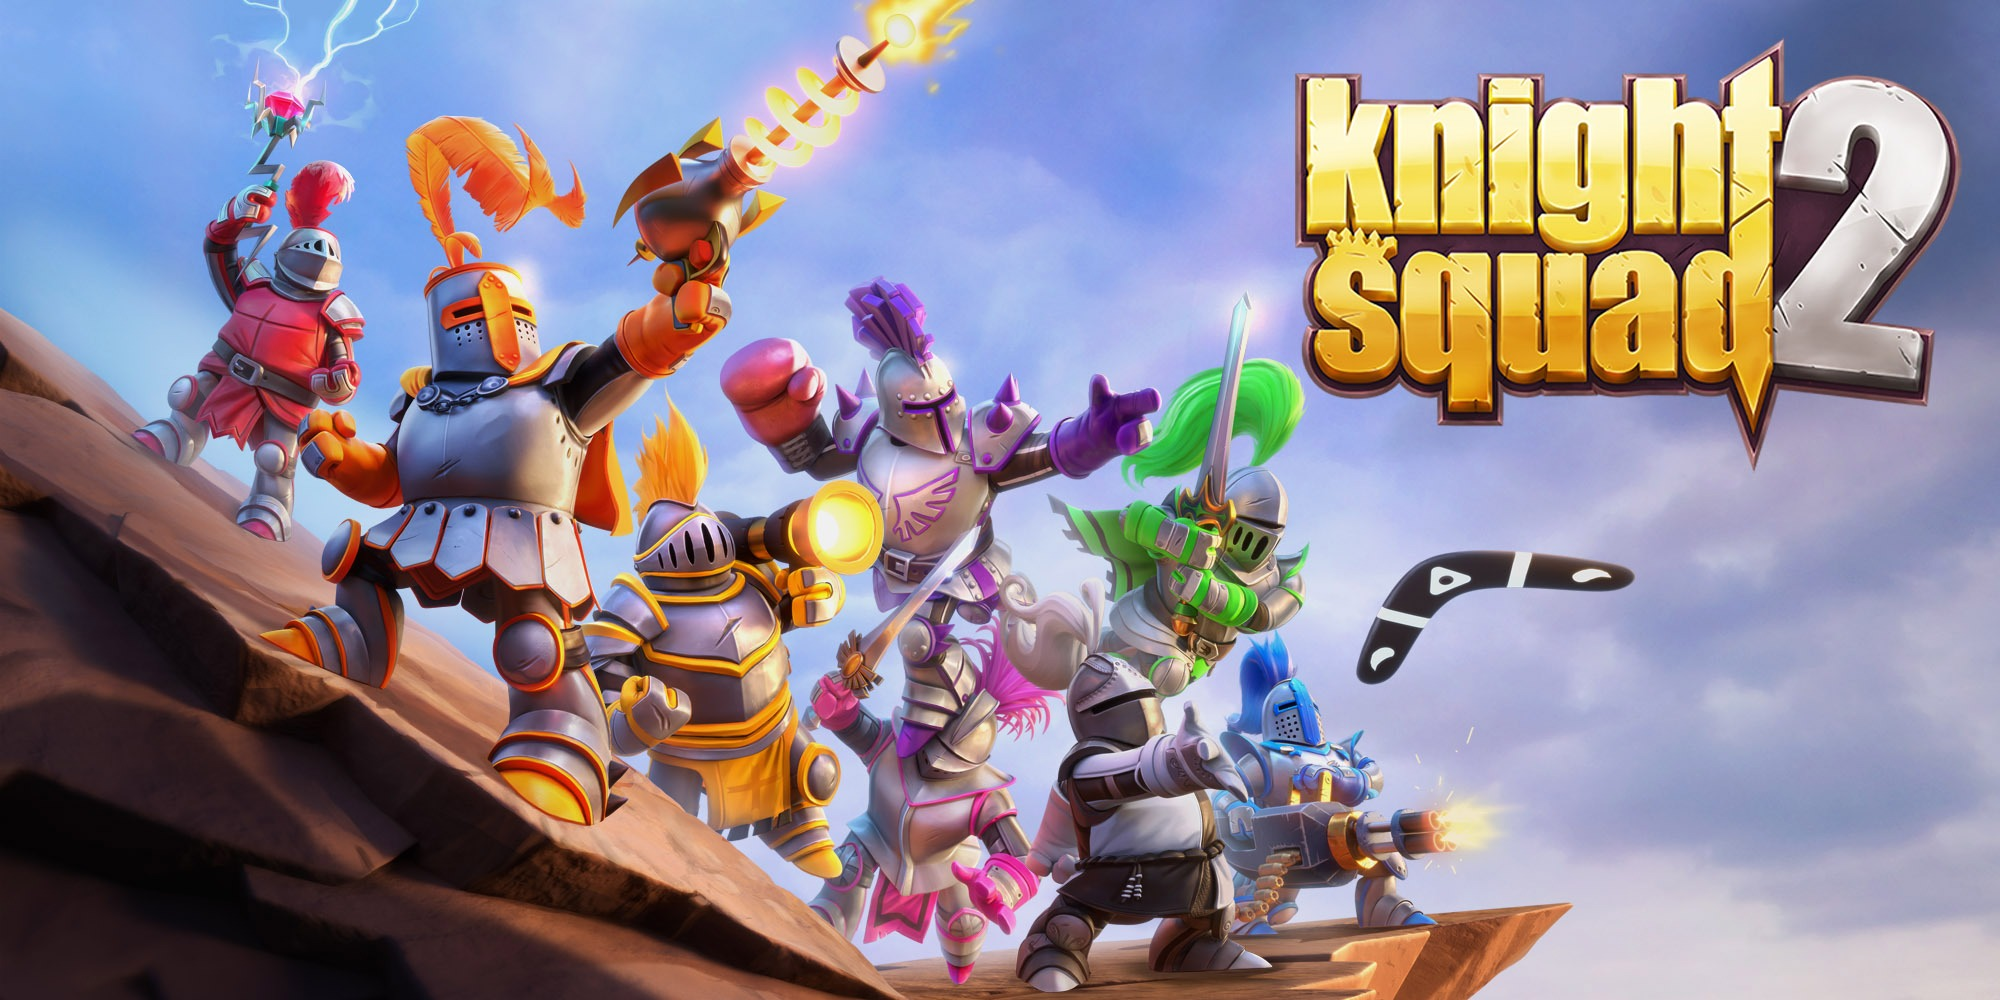 TEST Knight Squad 2 XWFR